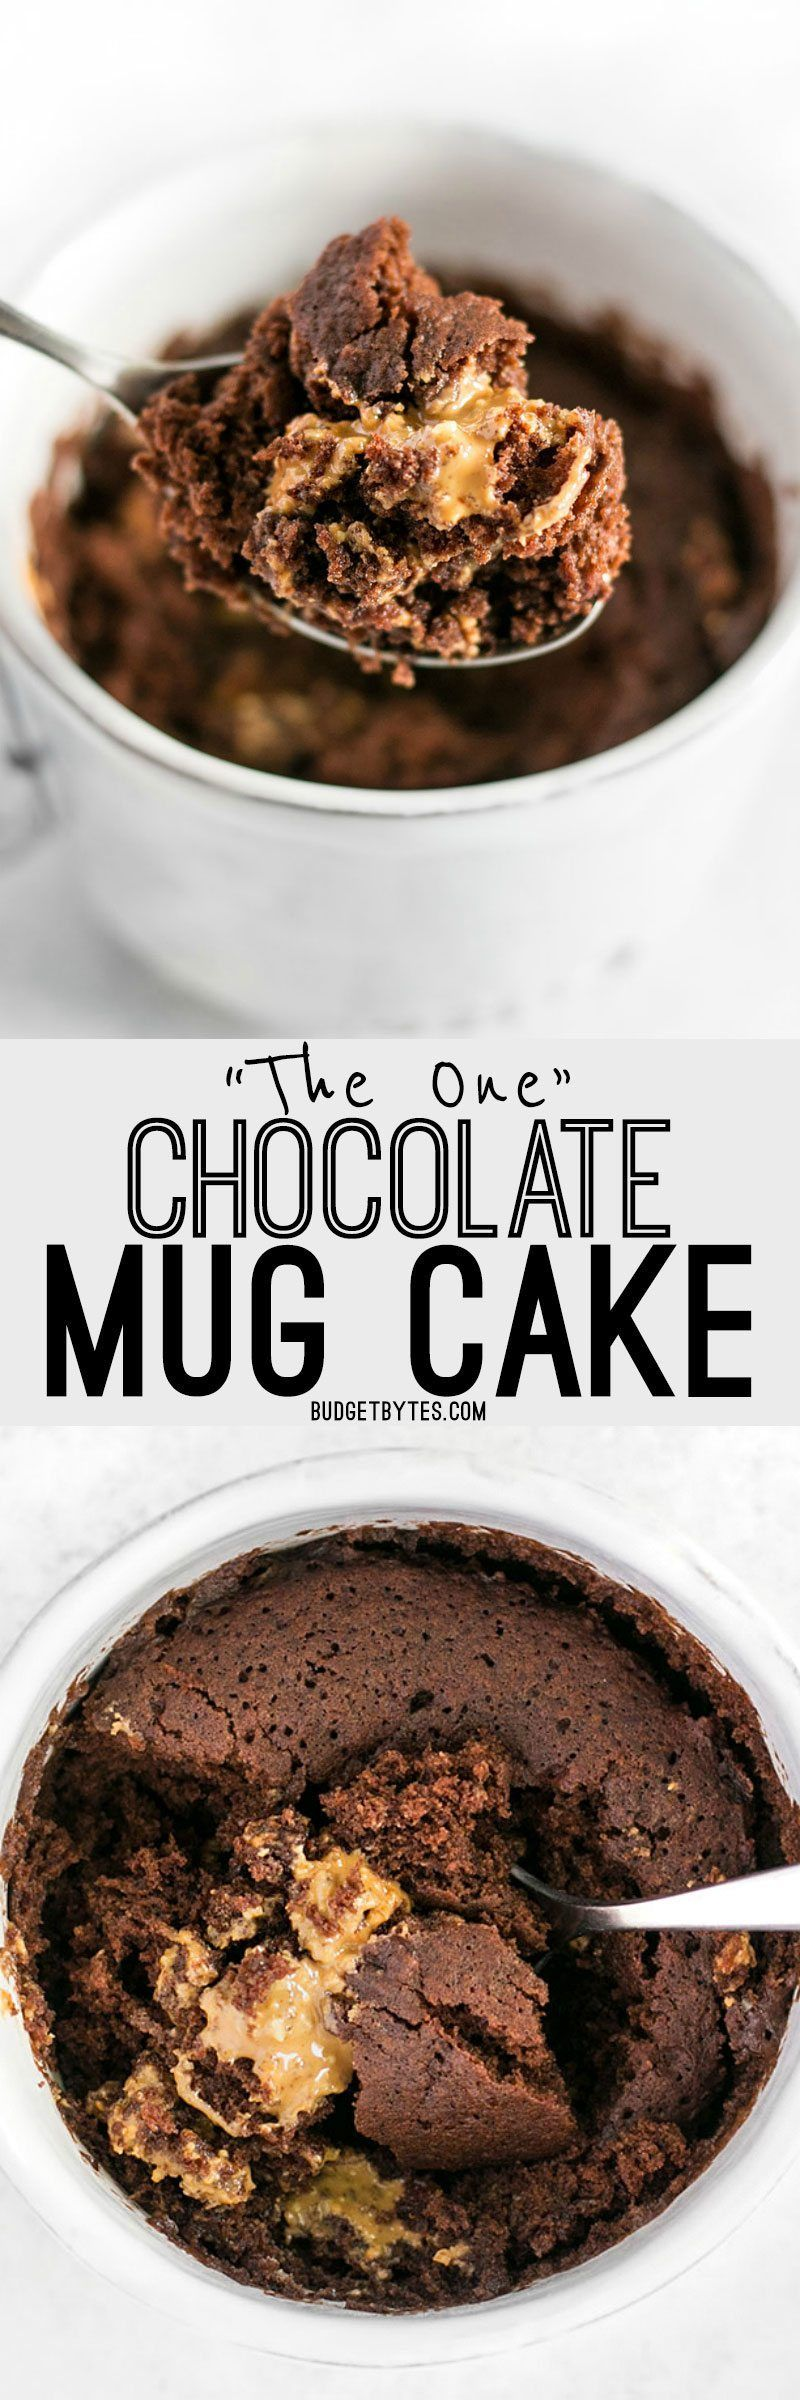 """The One"" Chocolate Mug Cake 